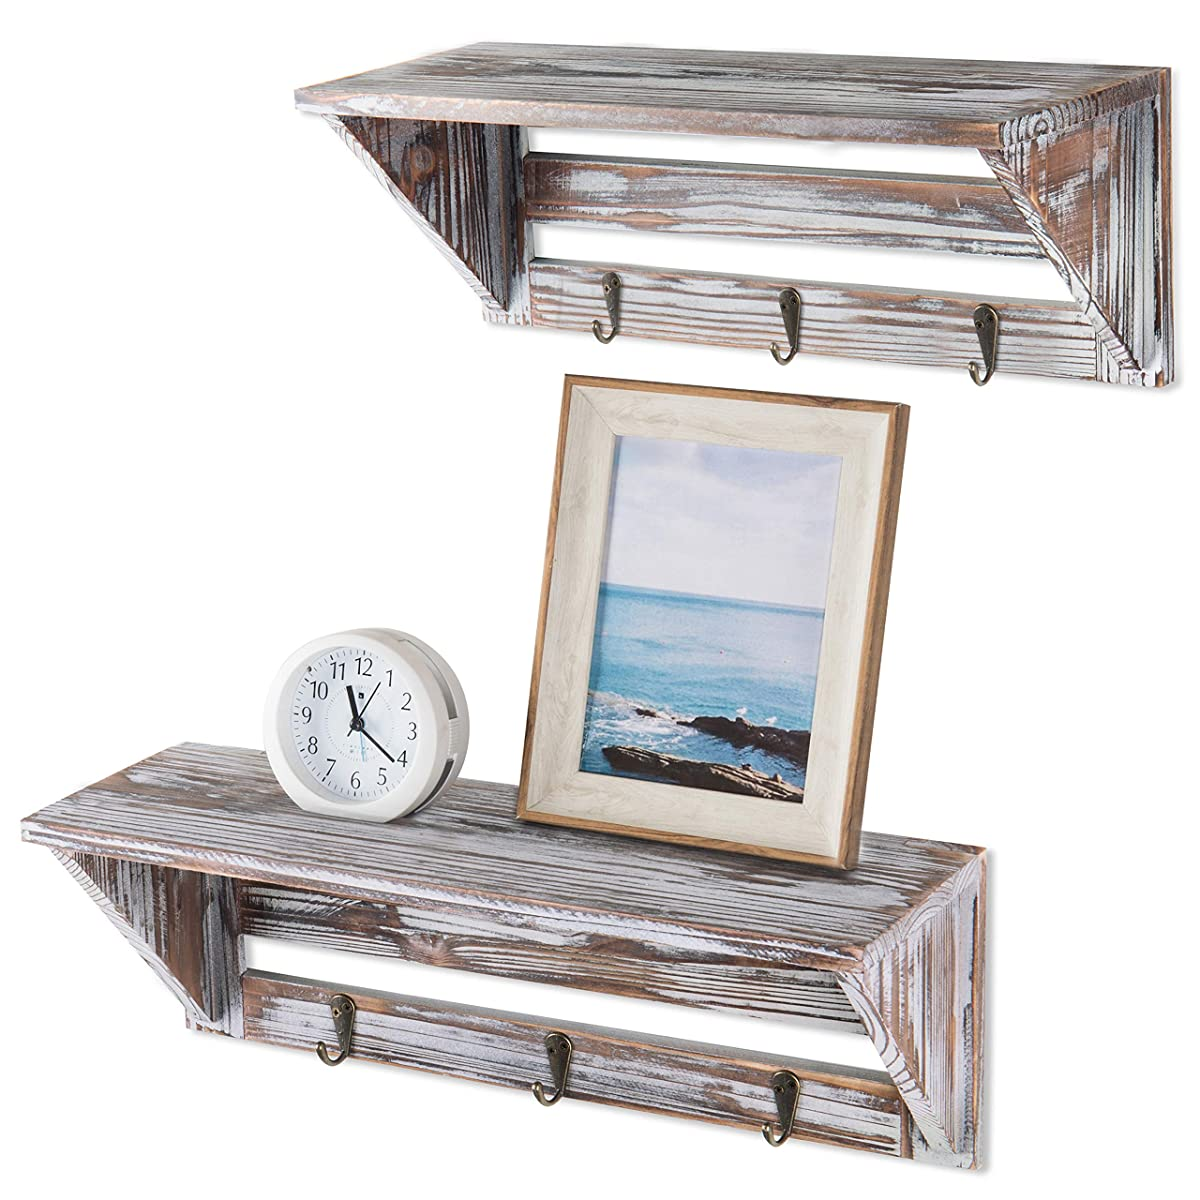 MyGift Farmhouse Style Torched Wood Wall- Mounted Shelf Display Rack with 3 Key Hooks, Set of 2, Brown